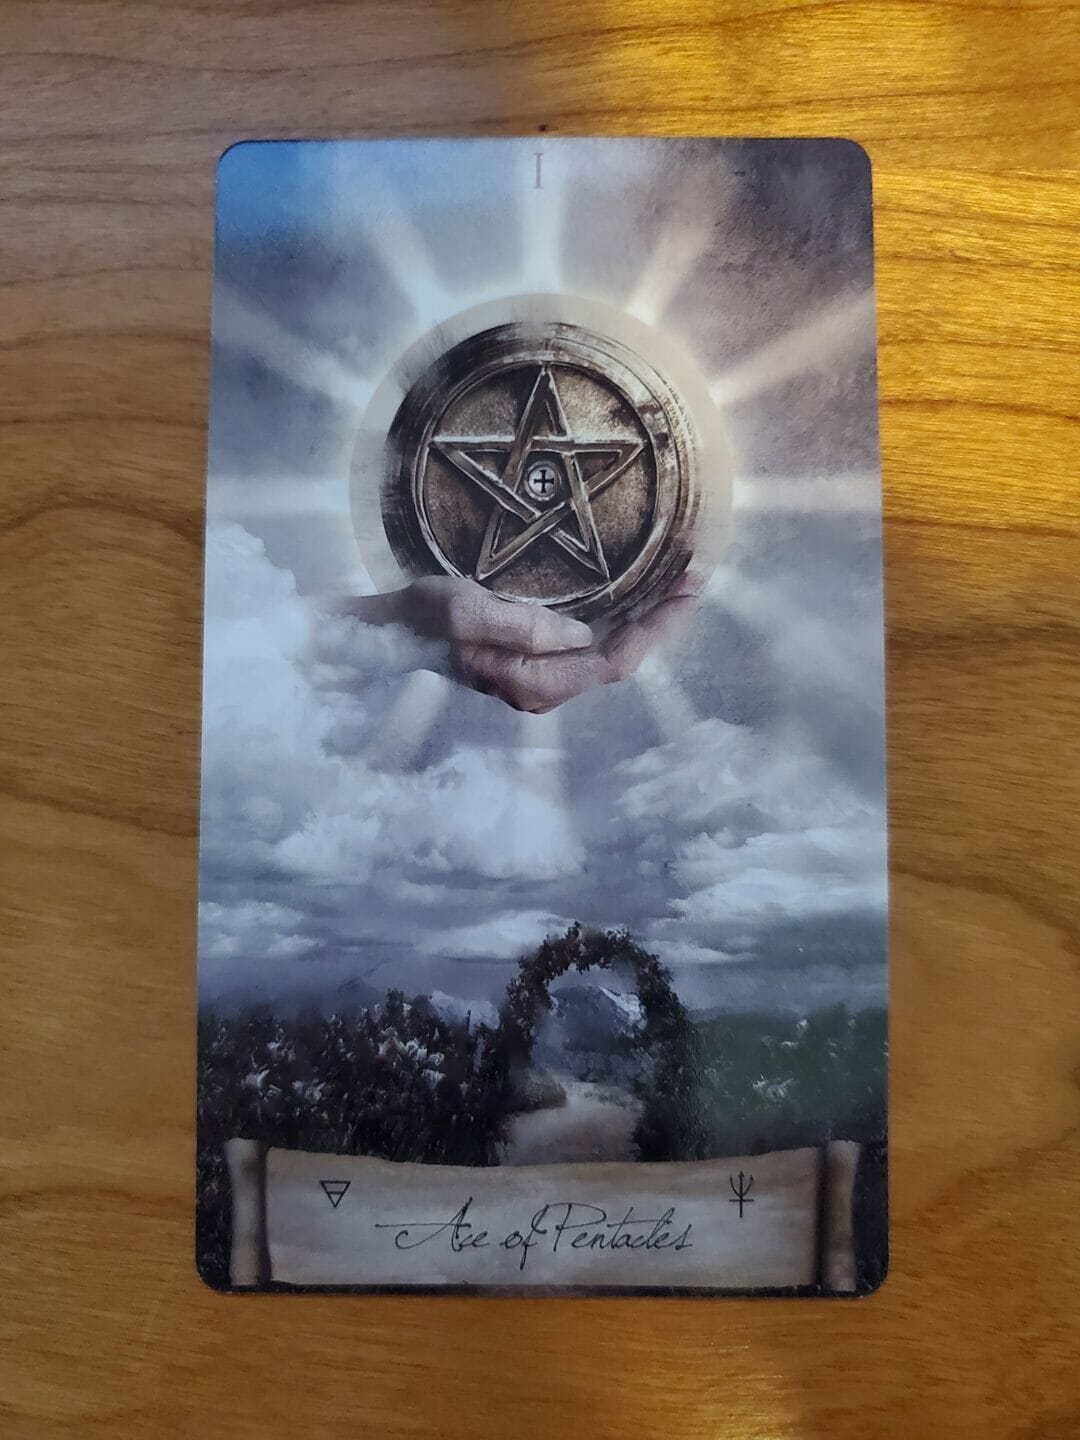 The Ace of Pentacles: Manifest your Dreams